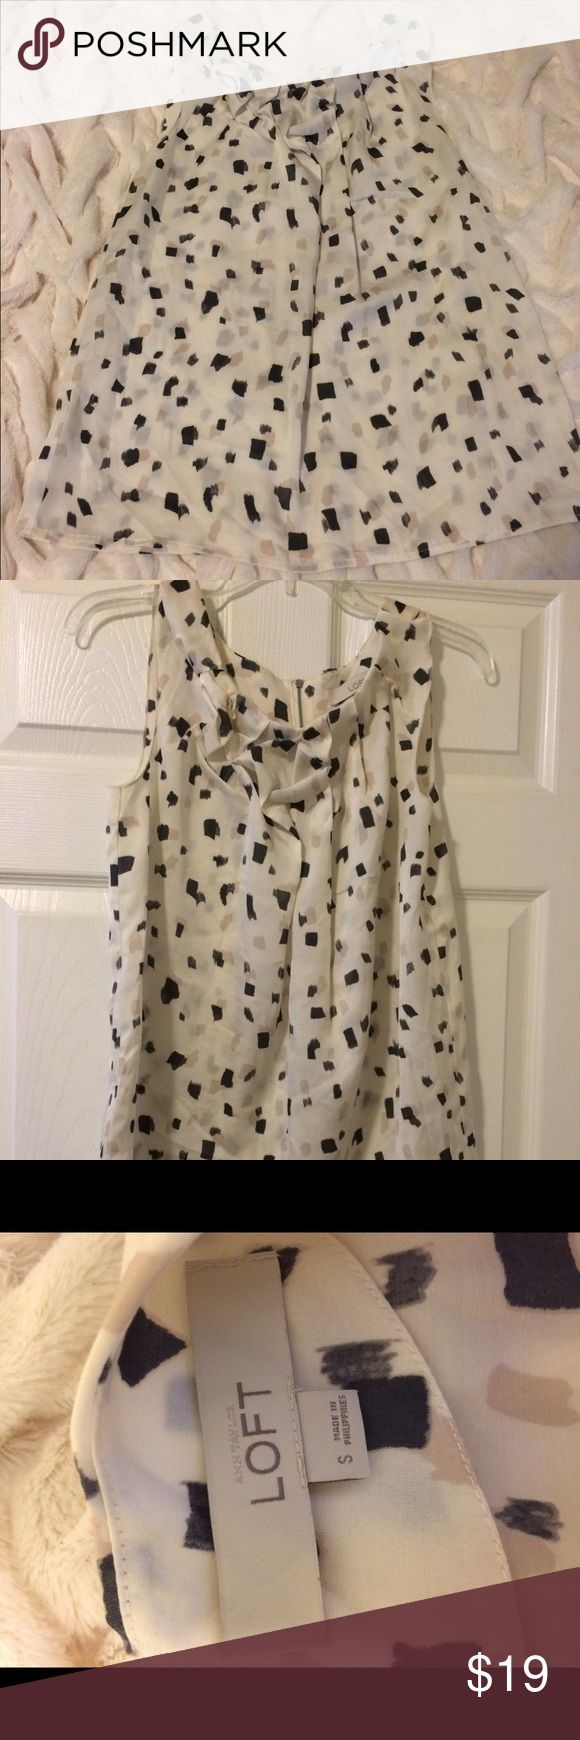 NWOT Anne Taylor Loft top Sleeveless Anne Taylor Loft top. Cream Black and Tan design. 100% polyester. Never worn. LOFT Tops